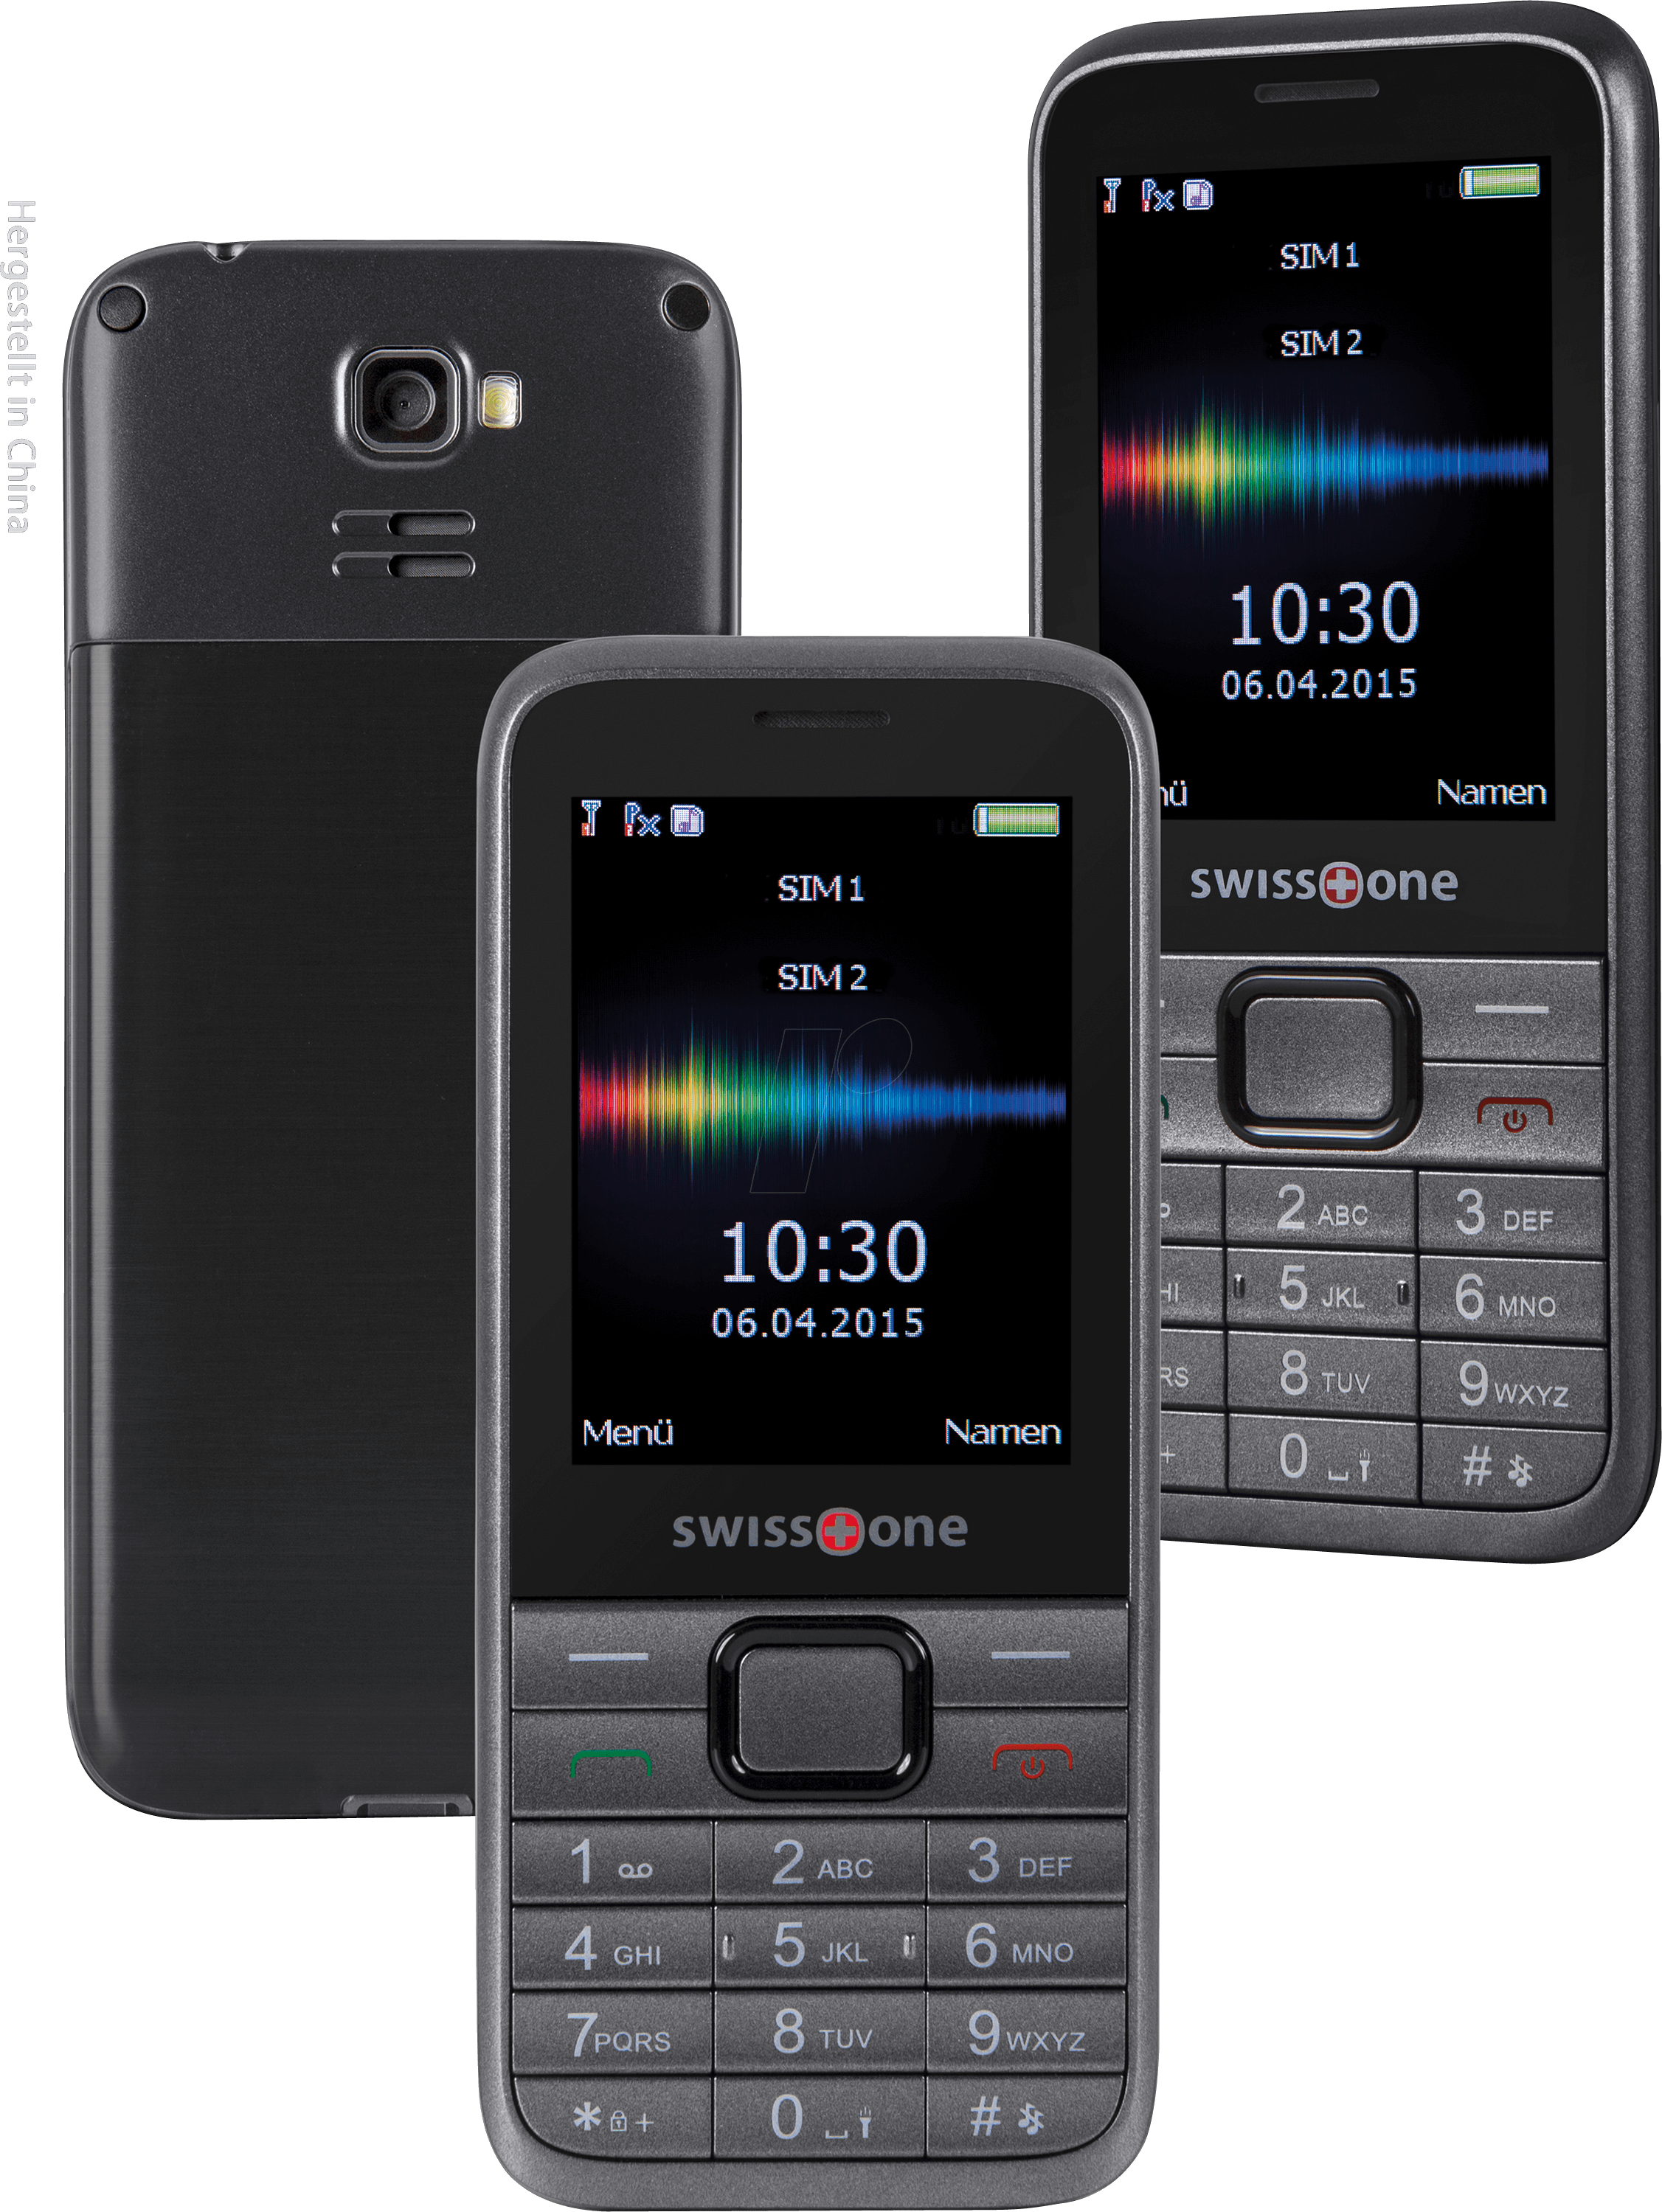 swisstone sc560 mobile phone dual sim at reichelt elektronik. Black Bedroom Furniture Sets. Home Design Ideas